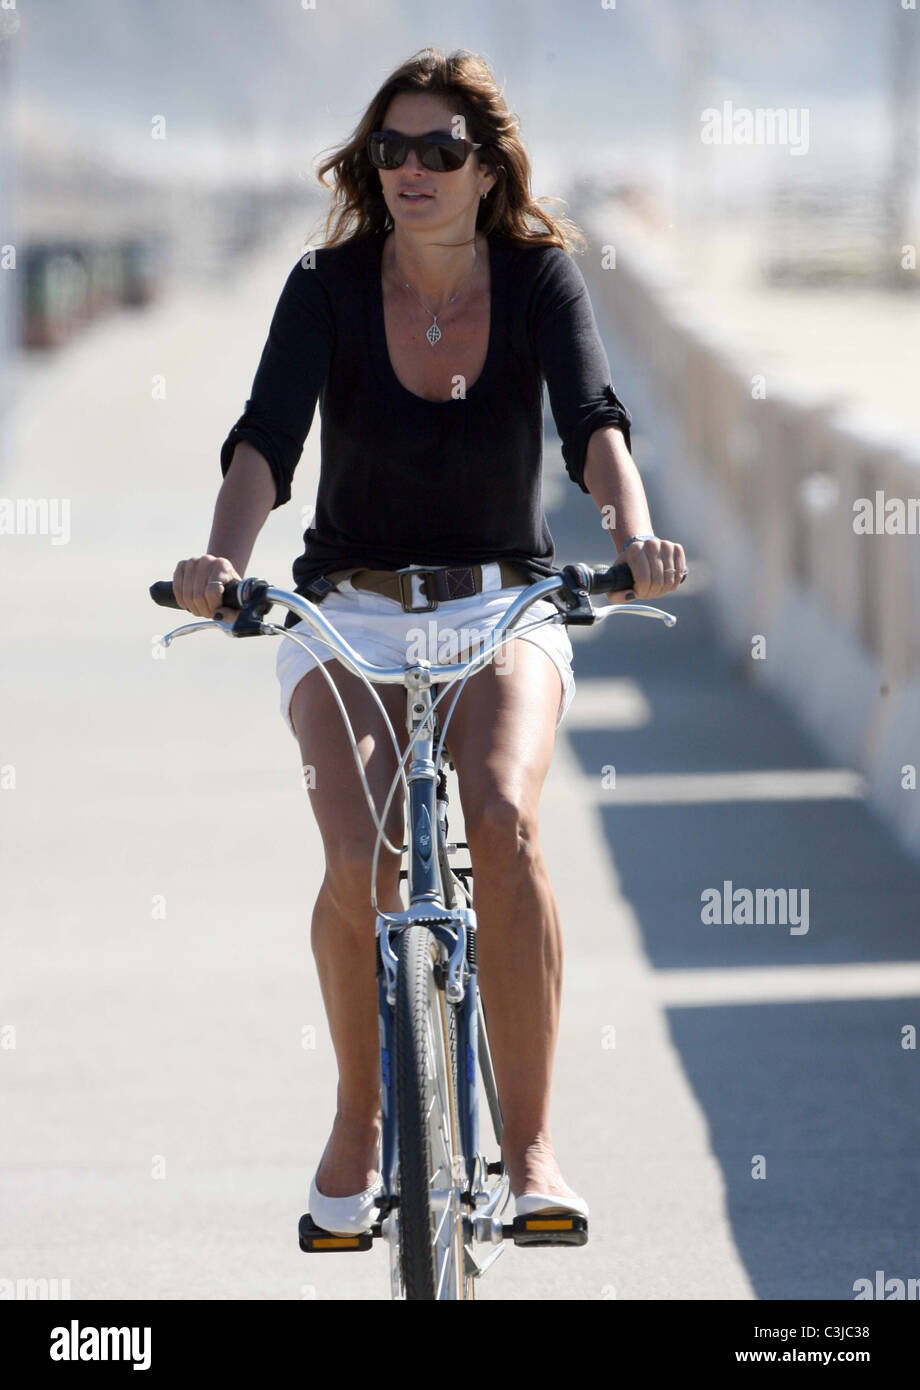 84a7b98cd48 Cindy Crawford taking a family bicycle ride in Malibu with her husband and  daughter Los Angeles